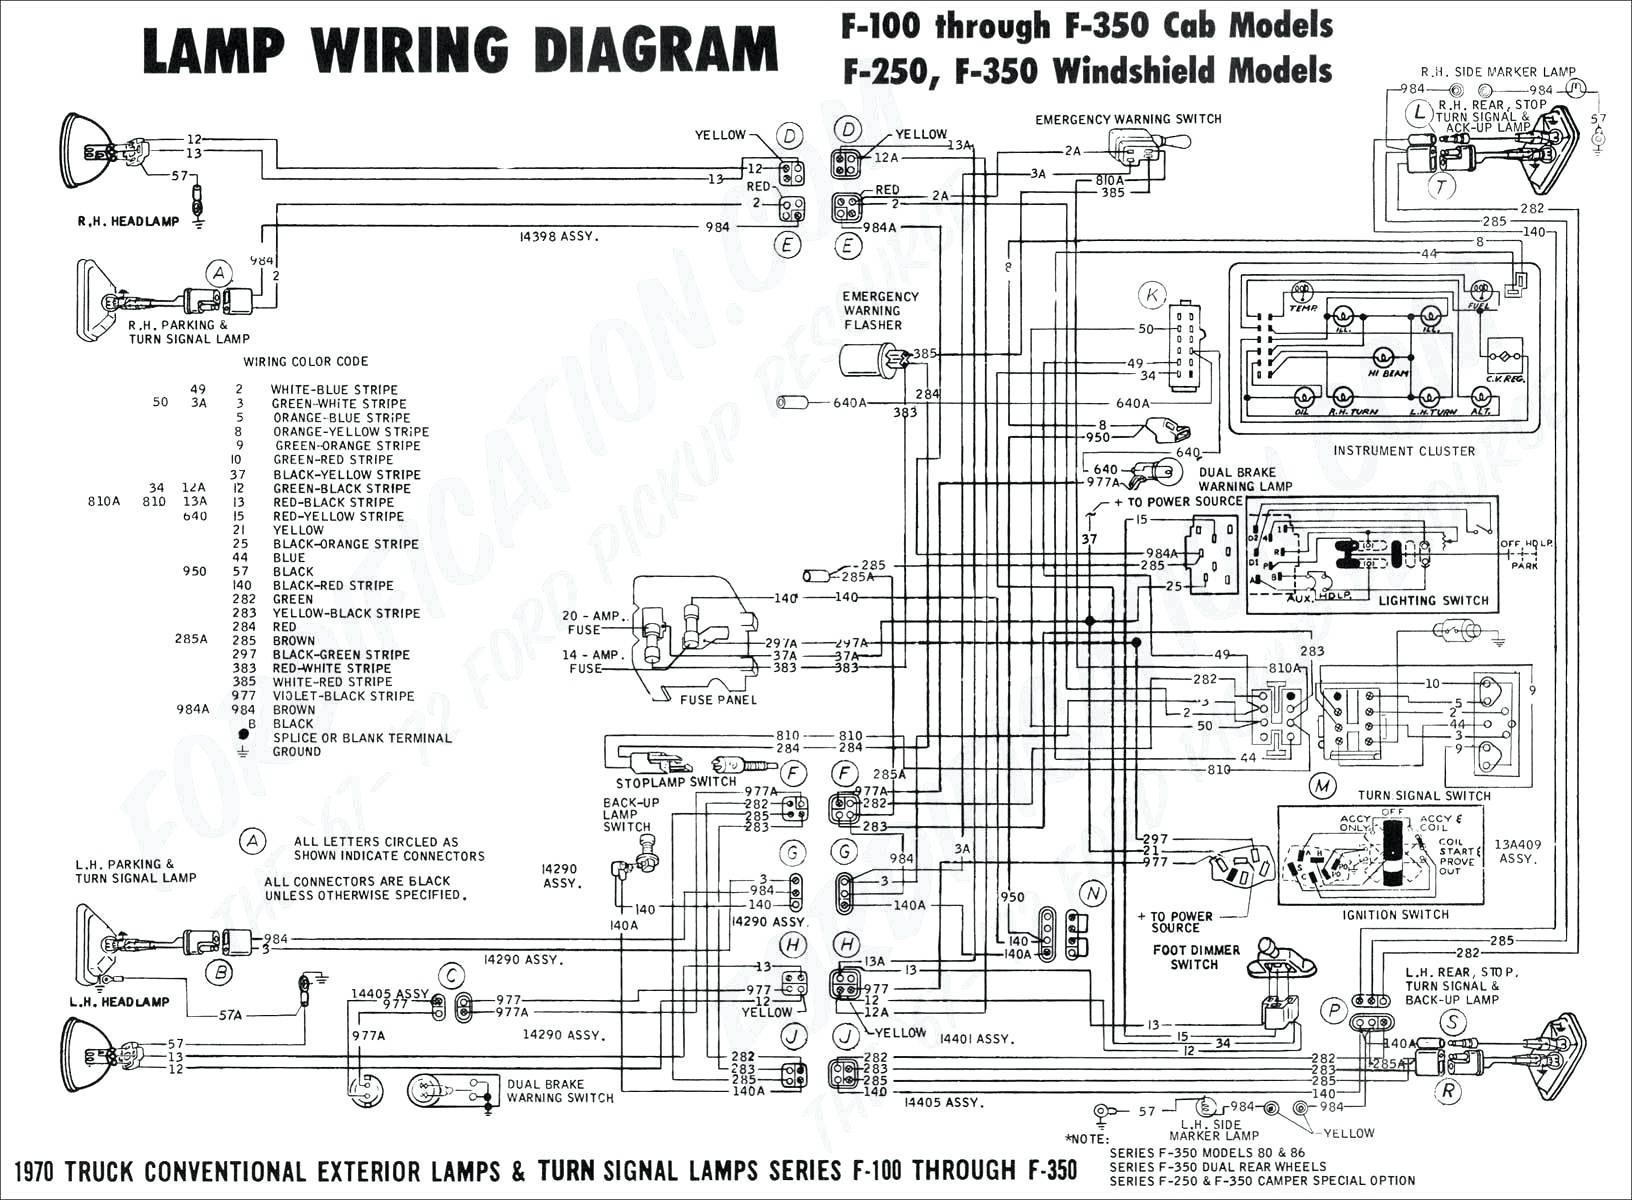 1990 ford F150 Engine Diagram | My Wiring DIagram  L Ford Engine Diagram on